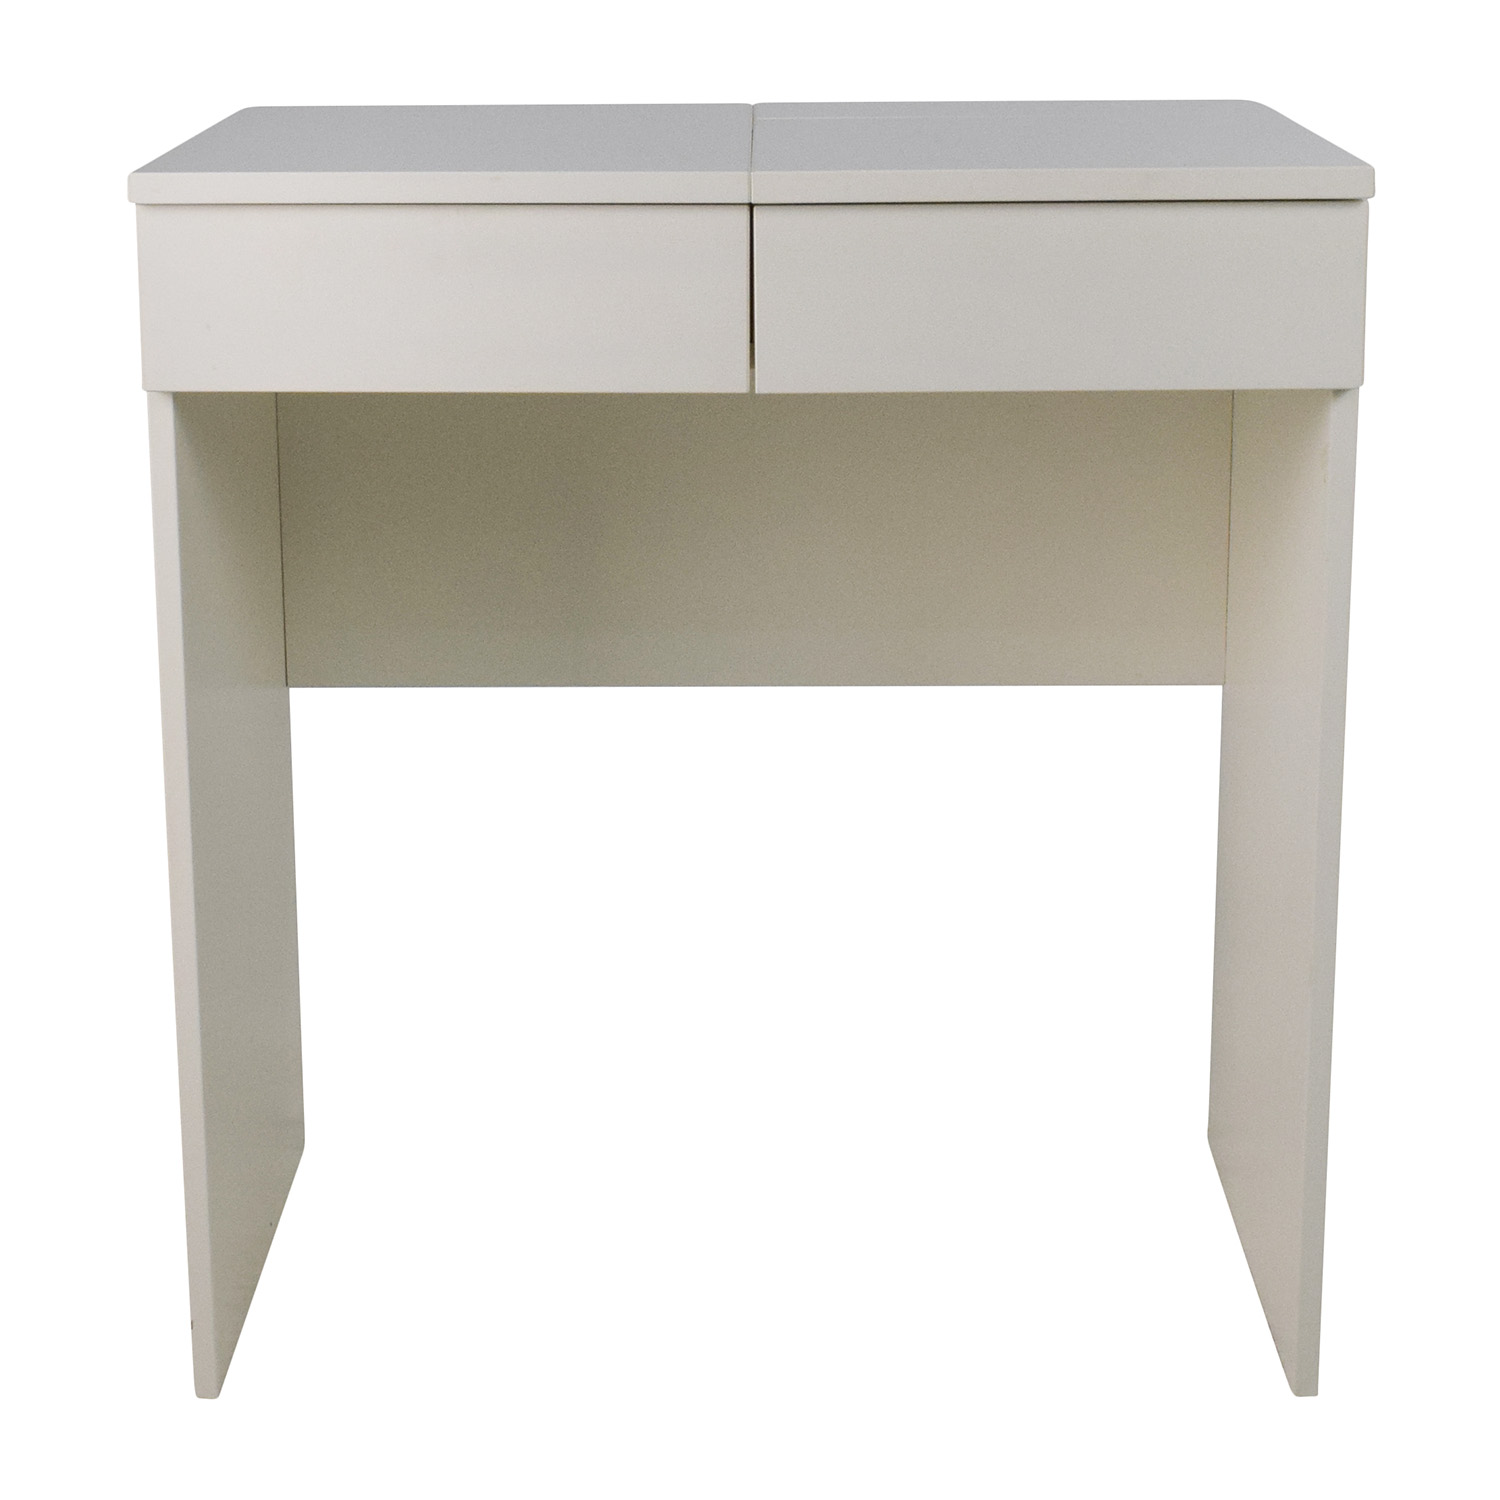 IKEA IKEA White Vanity Table second hand